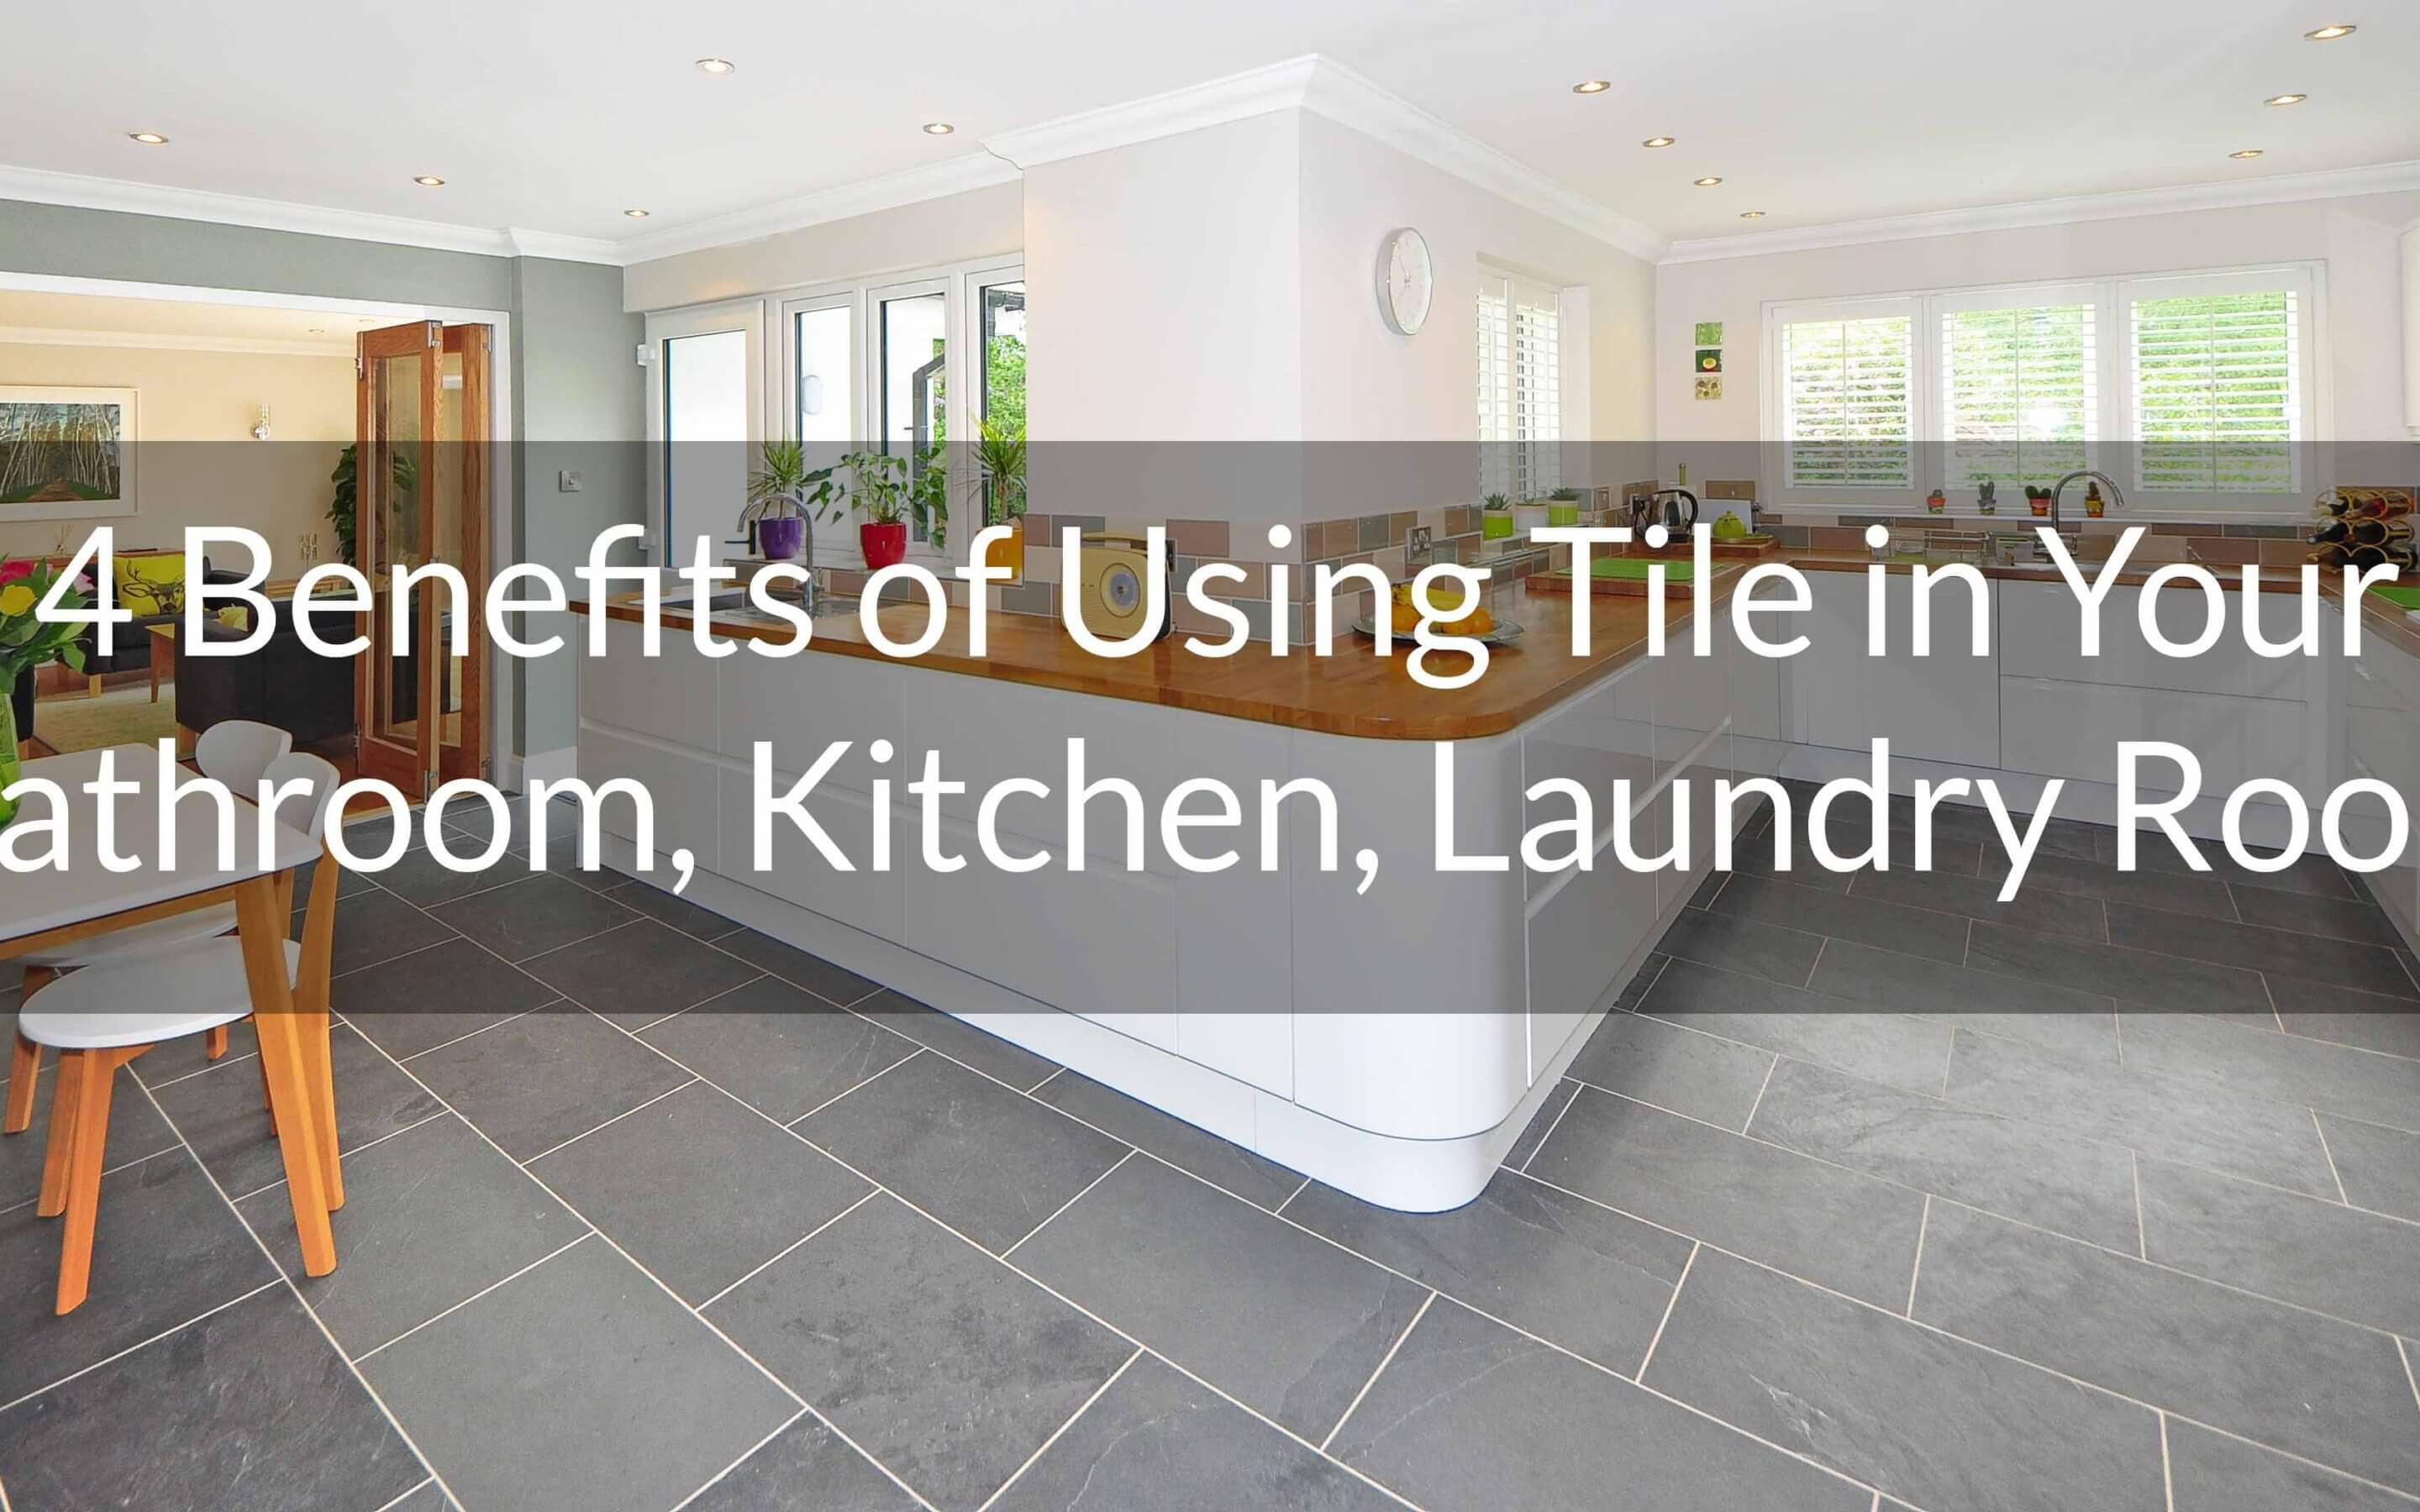 4 Benefits of Using Tile in Your Bathroom, Kitchen, Laundry Room